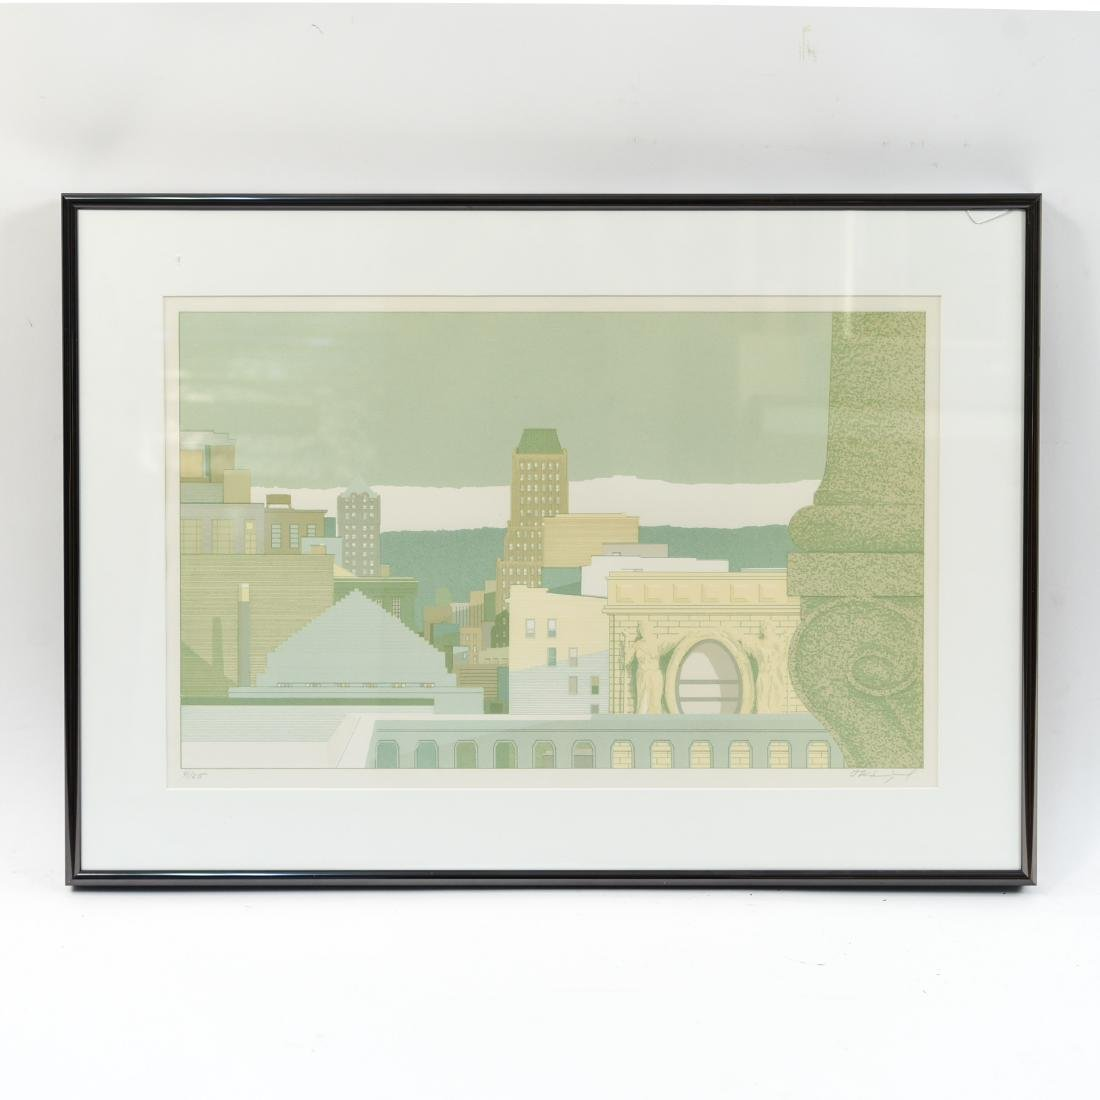 ARCHITECTURAL LITHOGRAPH IV